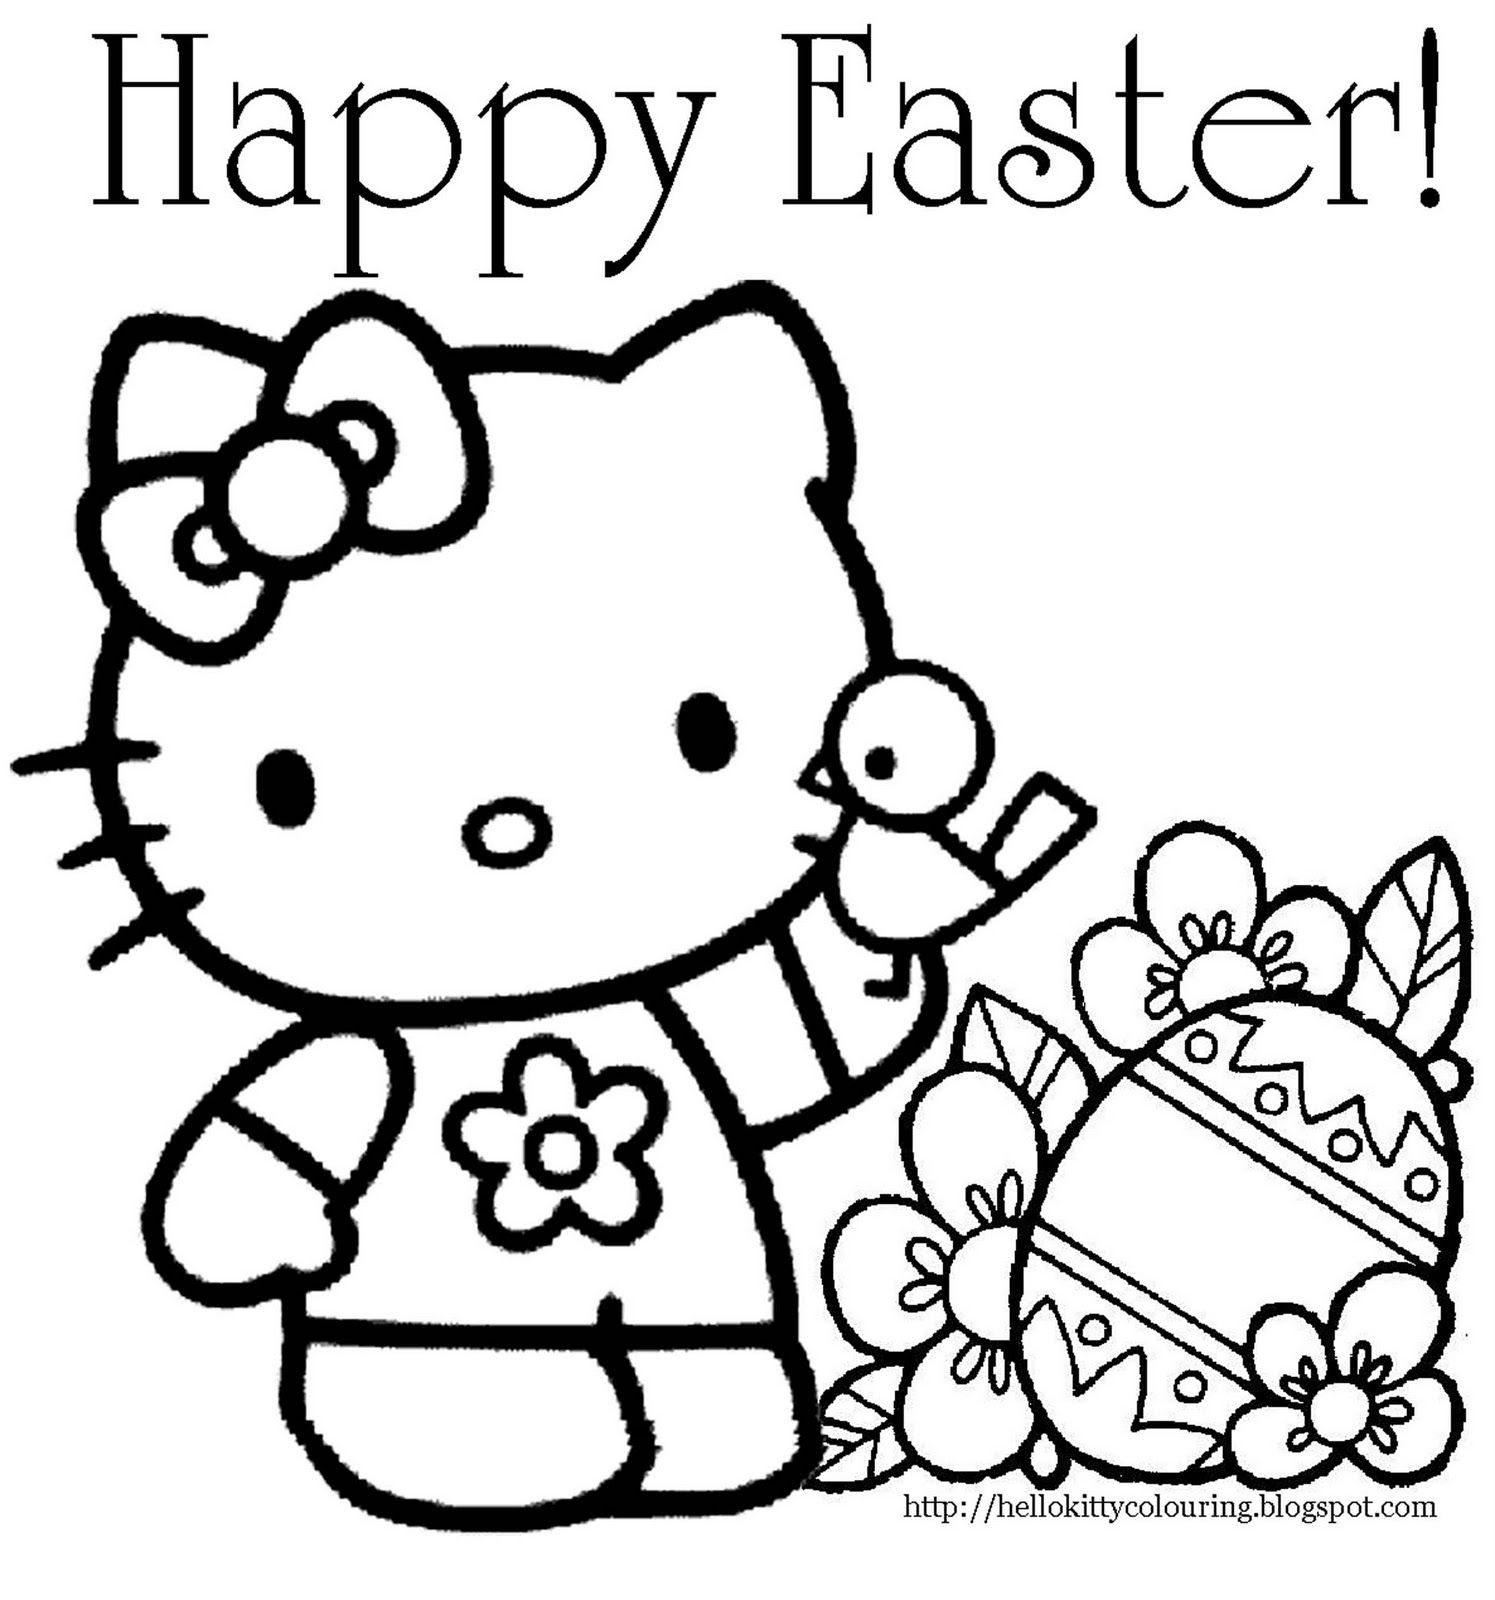 Spongebob Easter Coloring Pages  Coloring Home